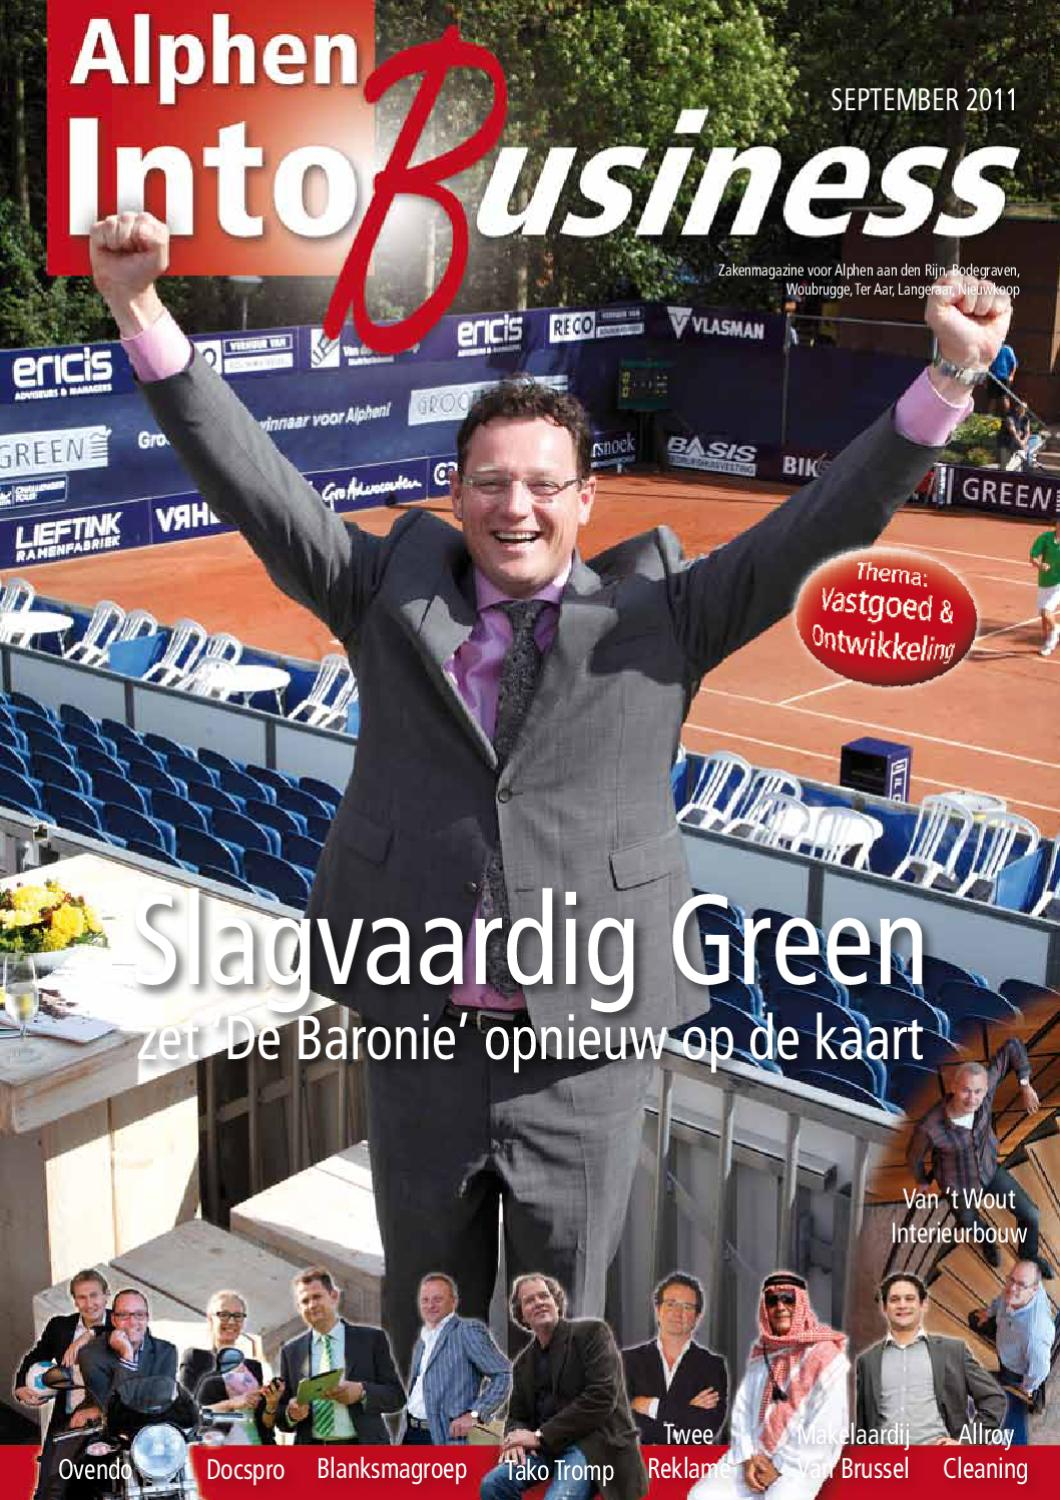 Alphen sept 2012 into by INTO Business - issuu